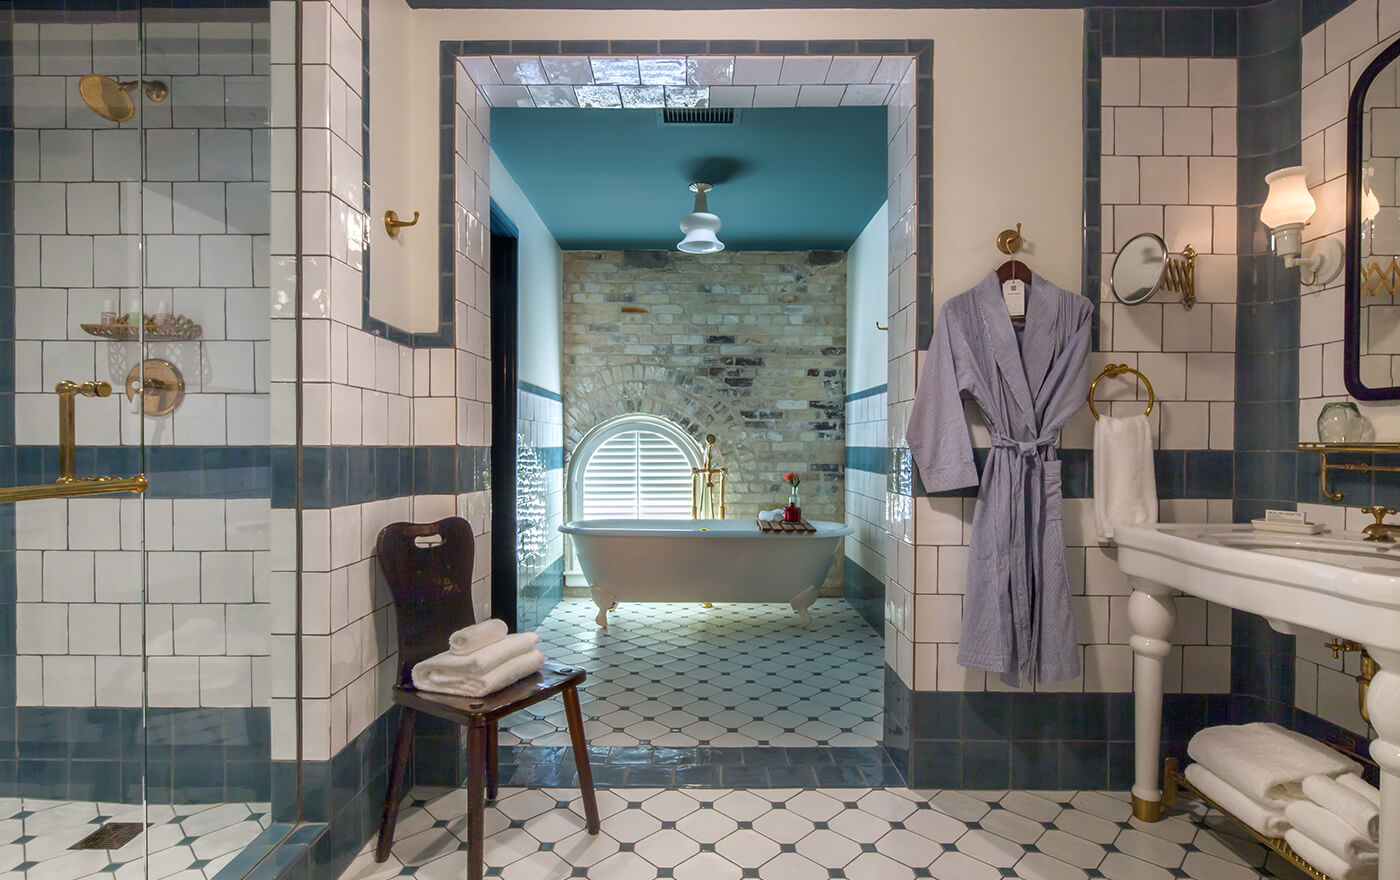 Picture of the luxurious bathroom in Hotel Emma's Garret room option. The picture includes the shower, a white claw foot tub, a white and gold sink with a light blue Hotel Emma robe.